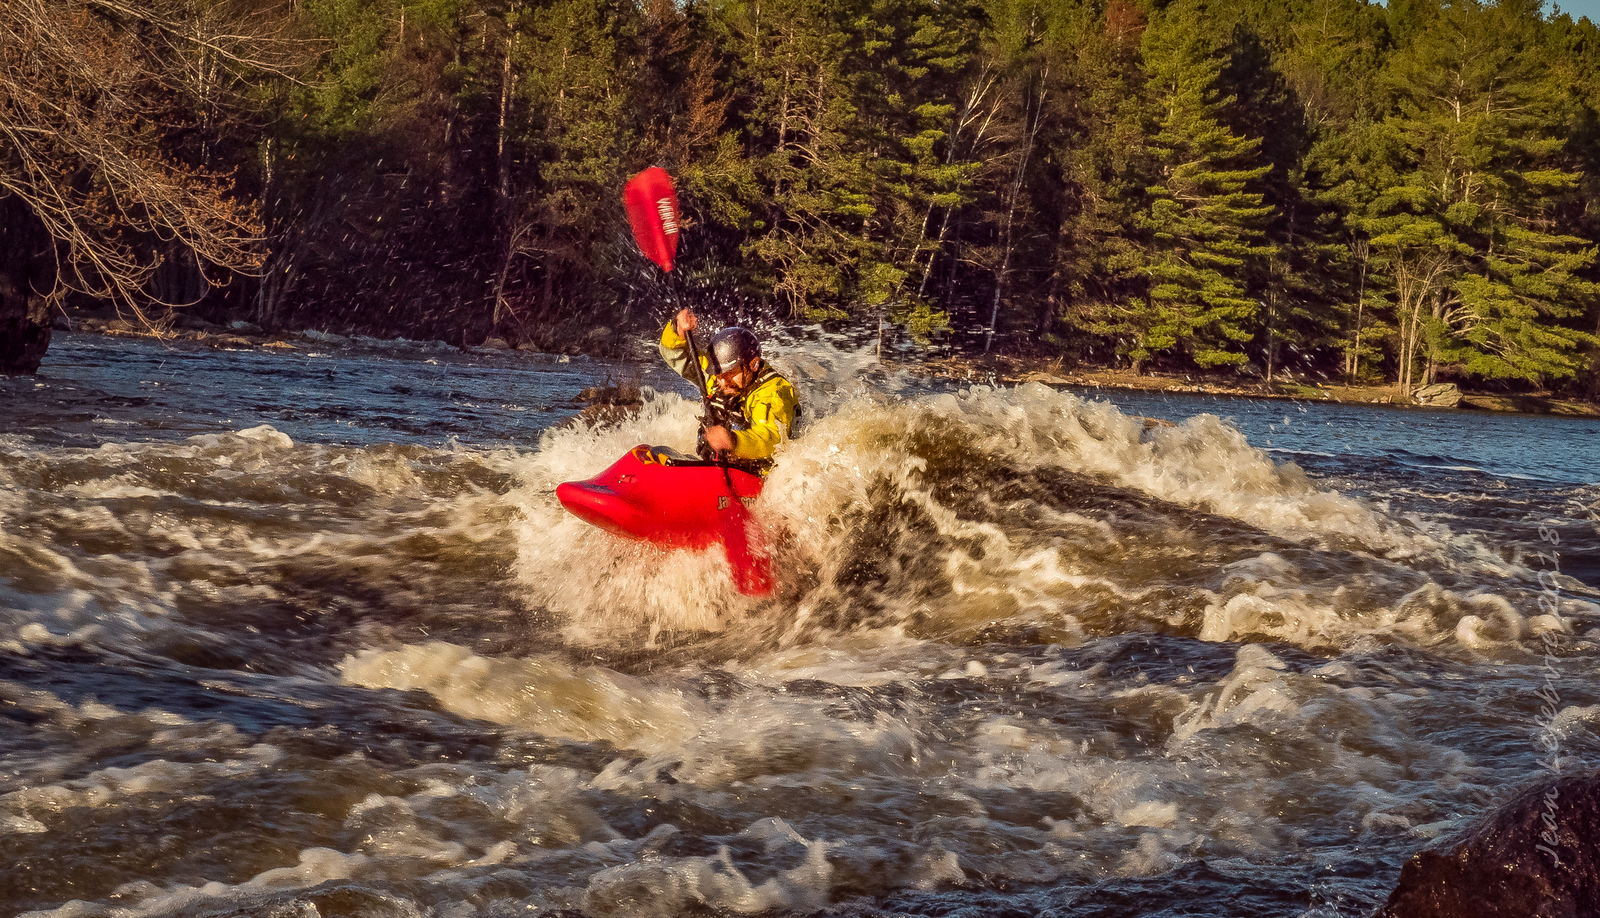 20180518-MadawaskaRiver-073of073